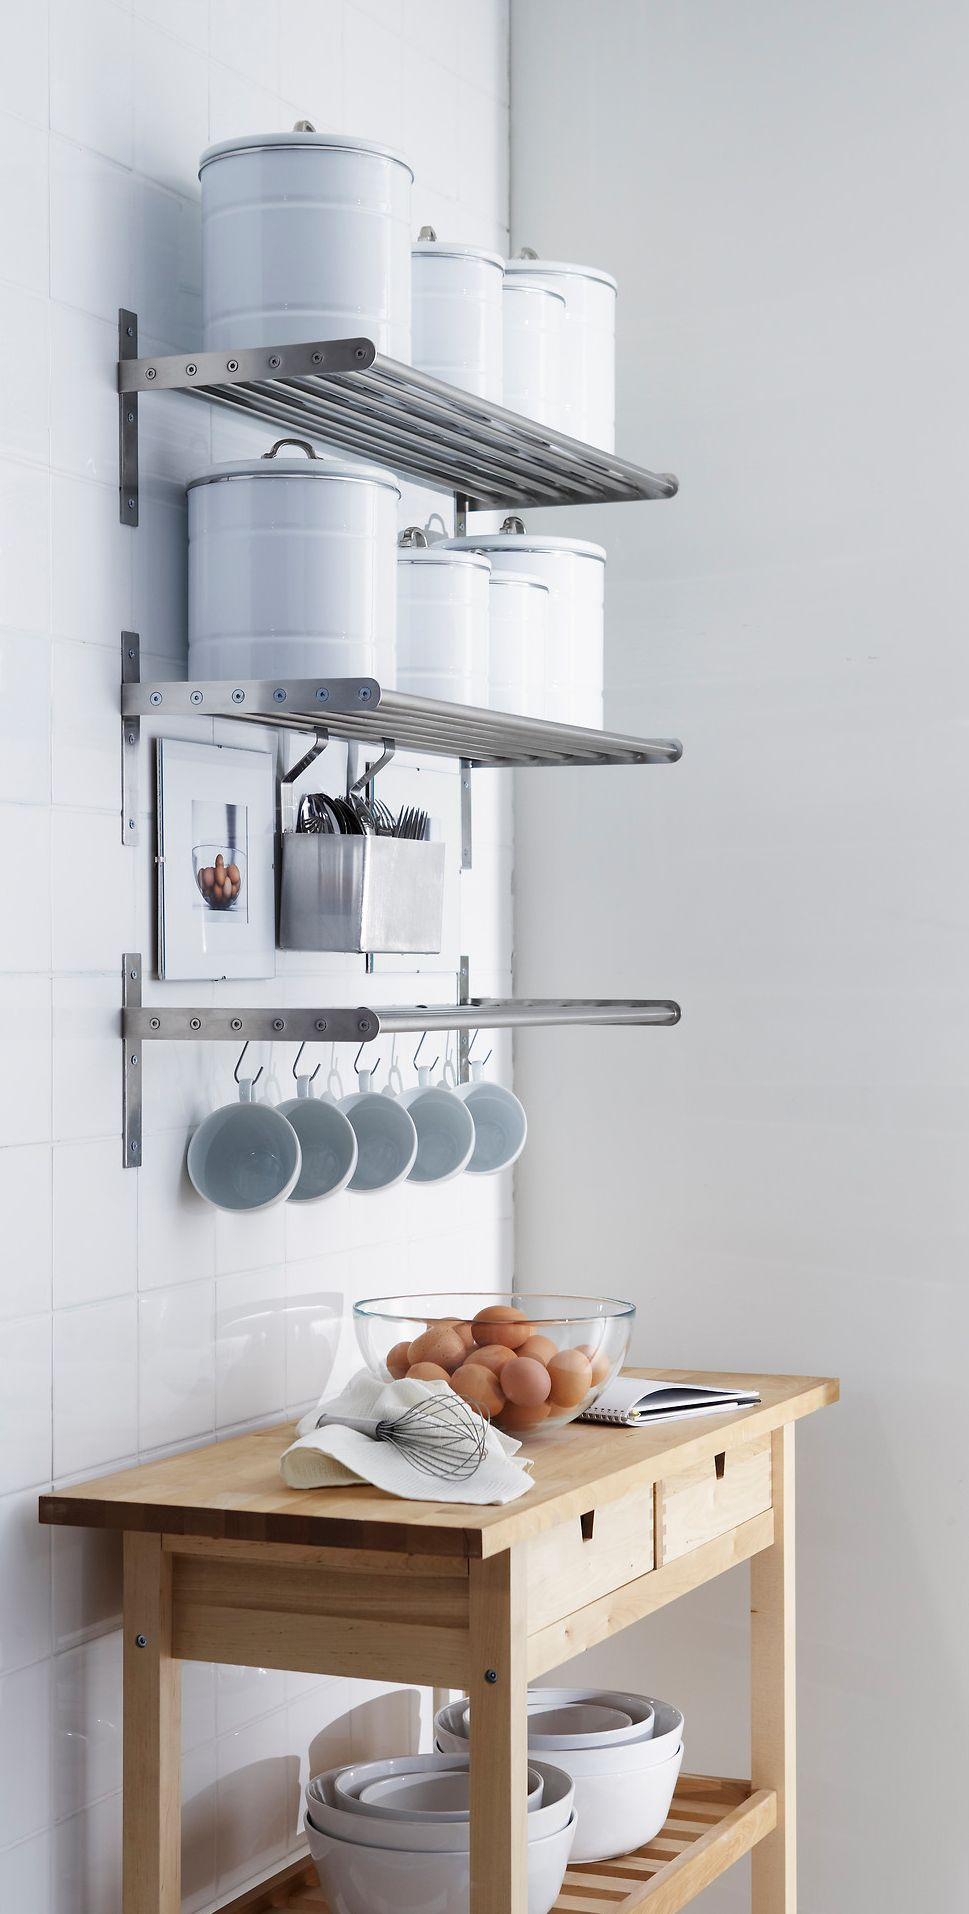 65 ingenious kitchen organization tips and storage ideas for Ikea grundtal spice rack